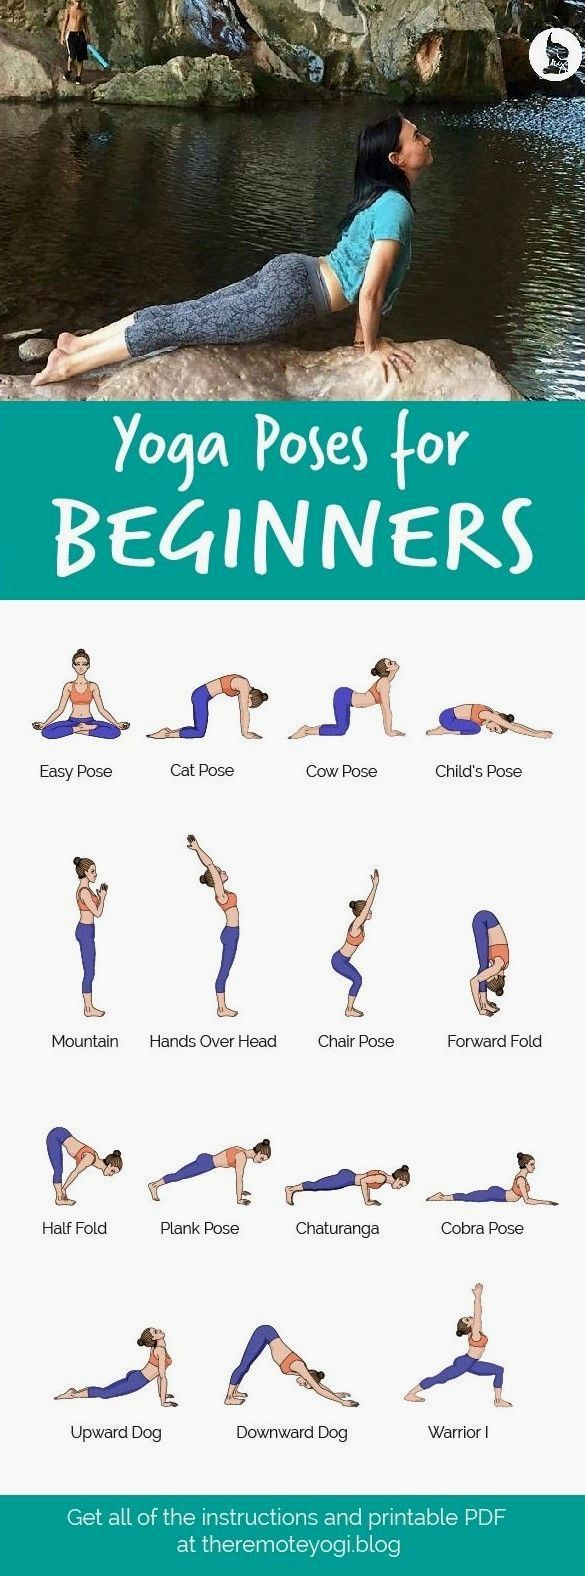 Vinyasa Yoga Dvd Yogalessons In 2020 Yoga Poses For Beginners Yoga For Beginners How To Do Yoga